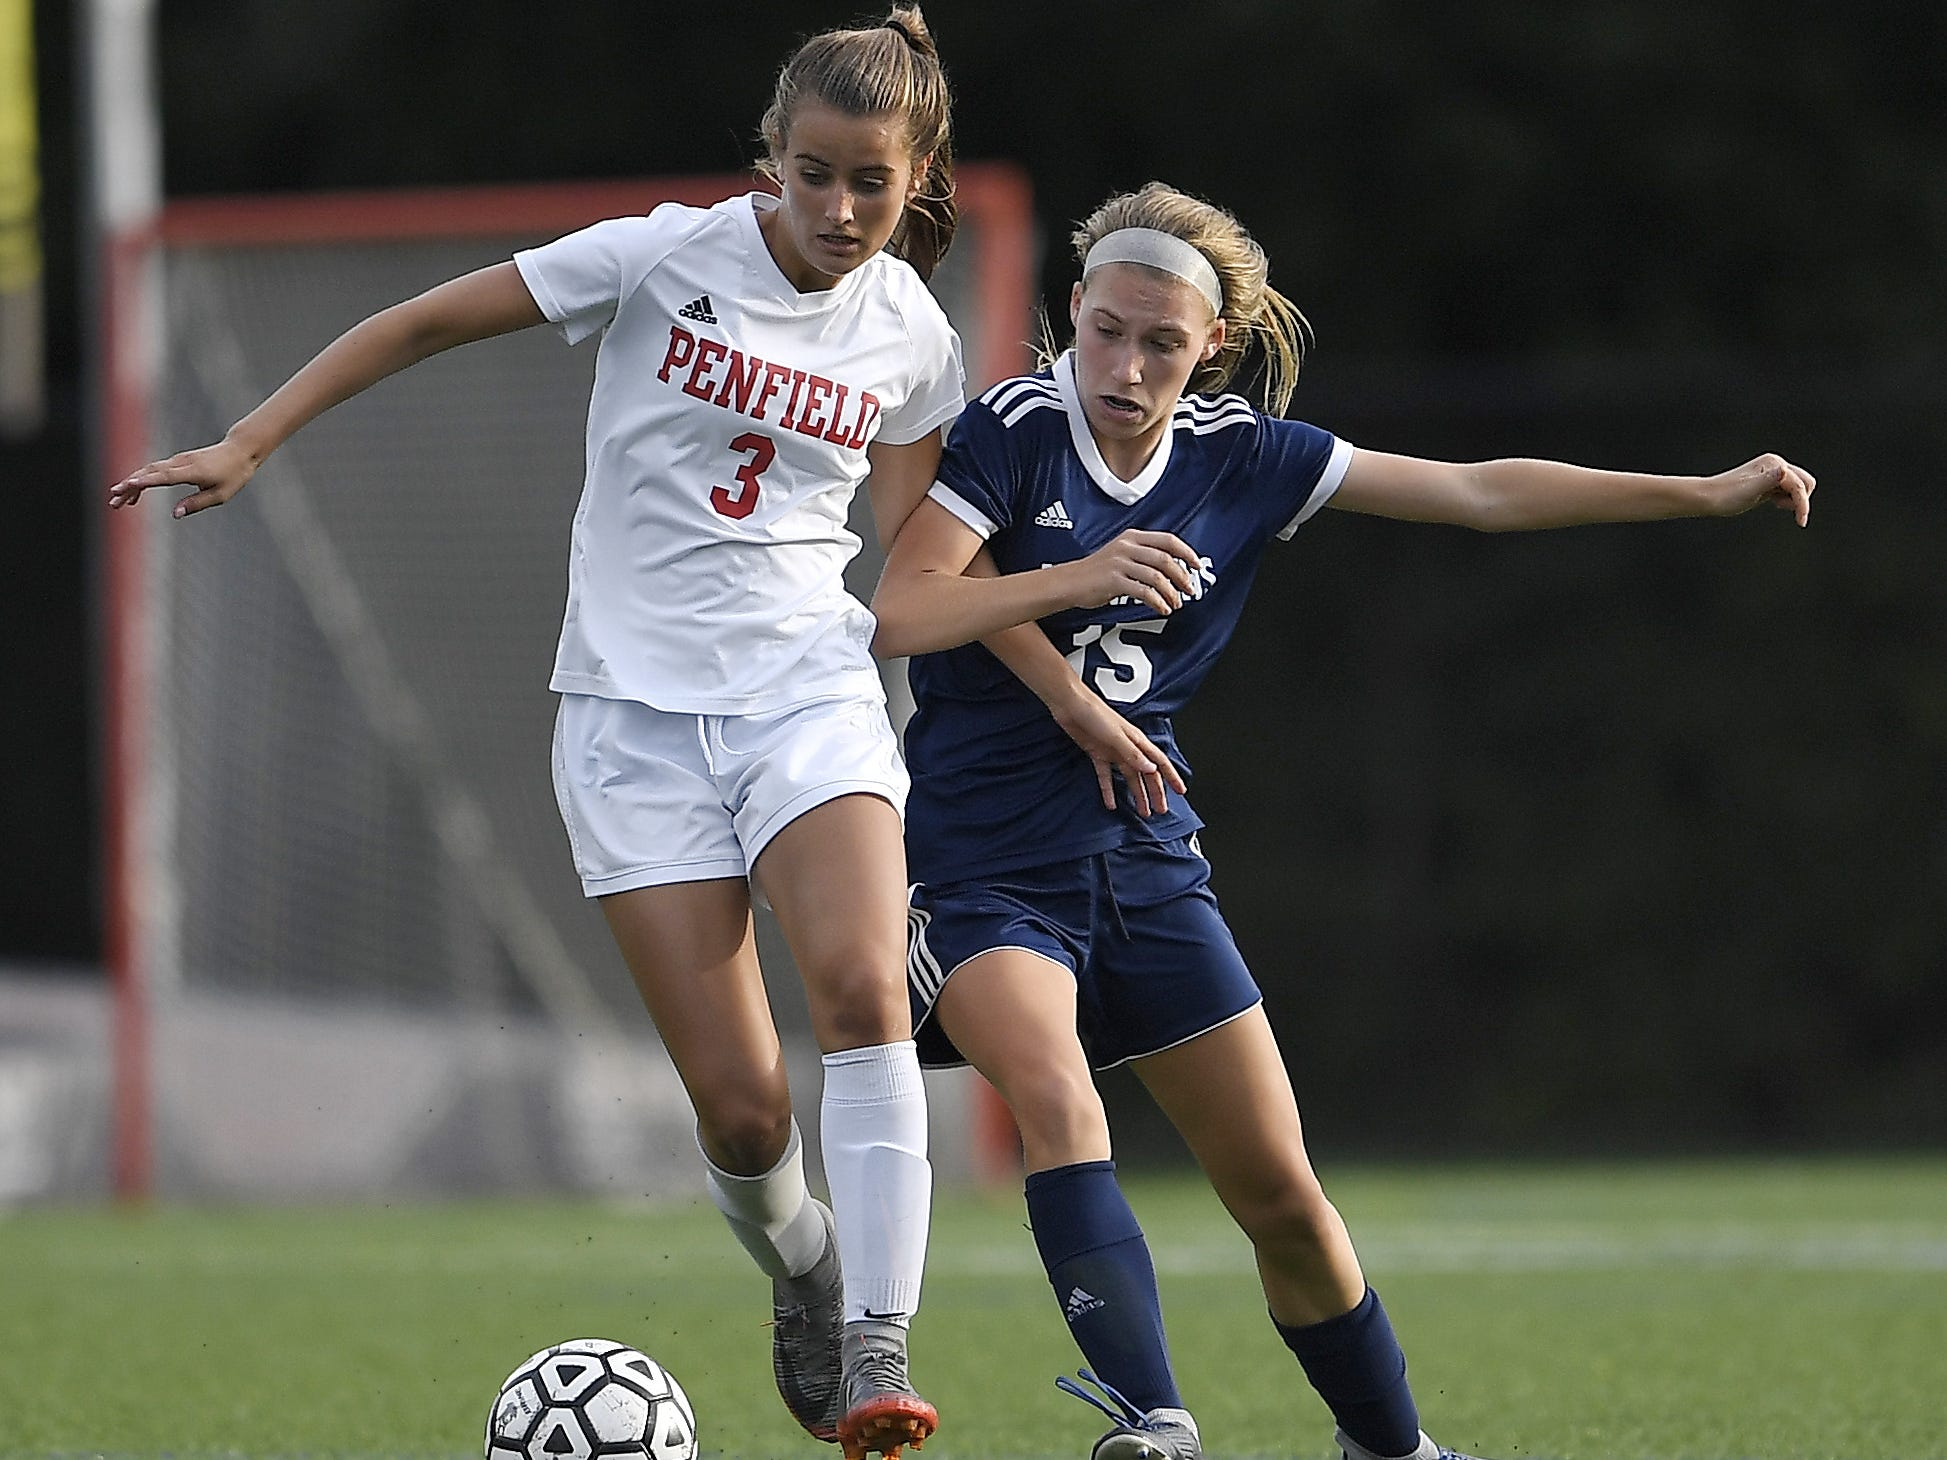 Penfield's Grace Murphy, left, shields the ball from Mercy's Shannon Trevor during a regular season game played at Our Lady of Mercy High School on Wednesday, Sept. 26, 2018. Mercy beat Penfield 1-0.